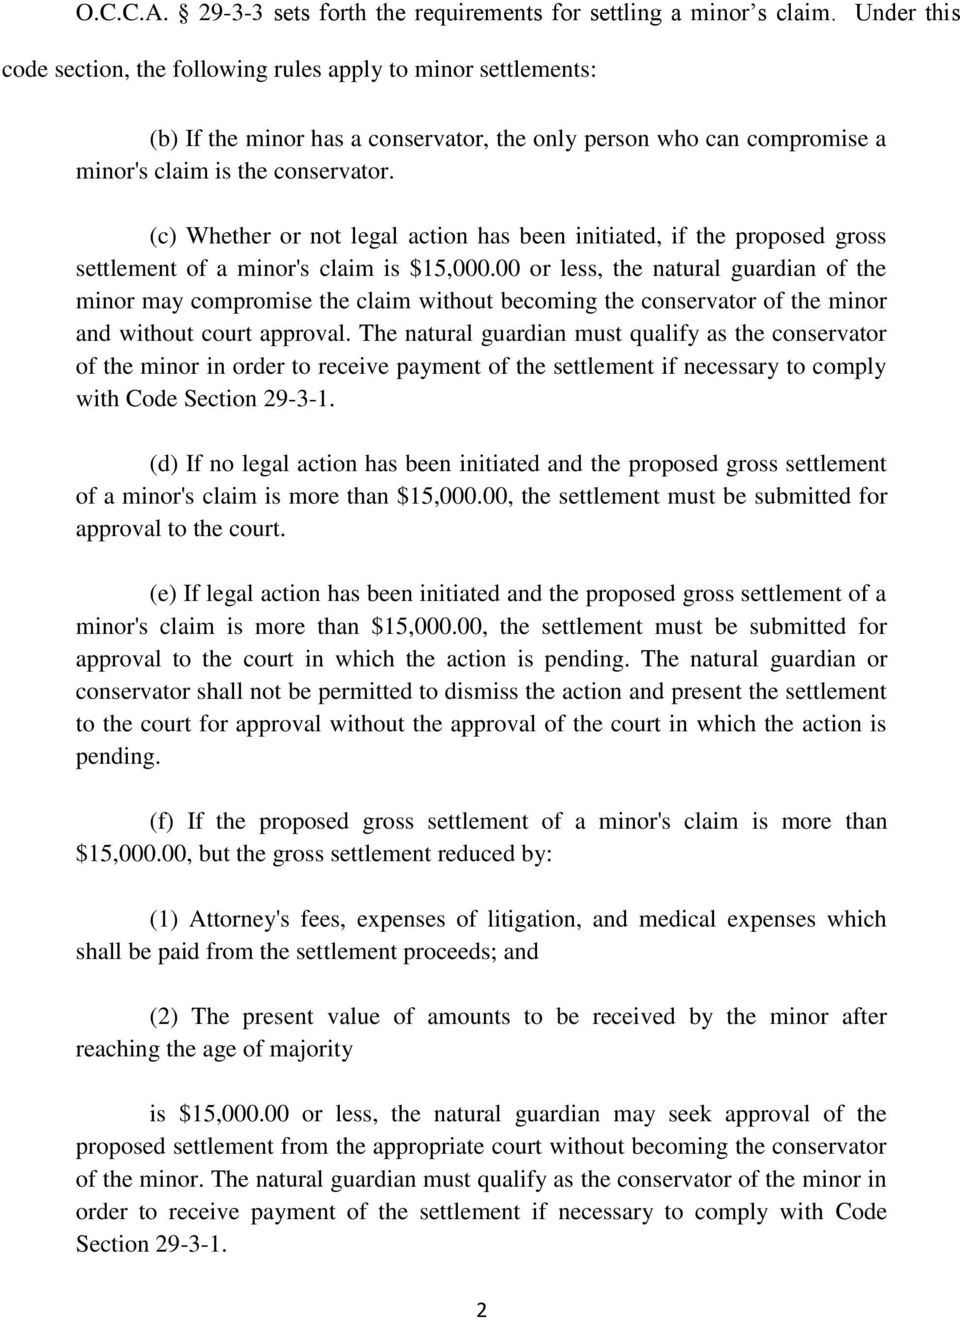 (c) Whether or not legal action has been initiated, if the proposed gross settlement of a minor's claim is $15,000.